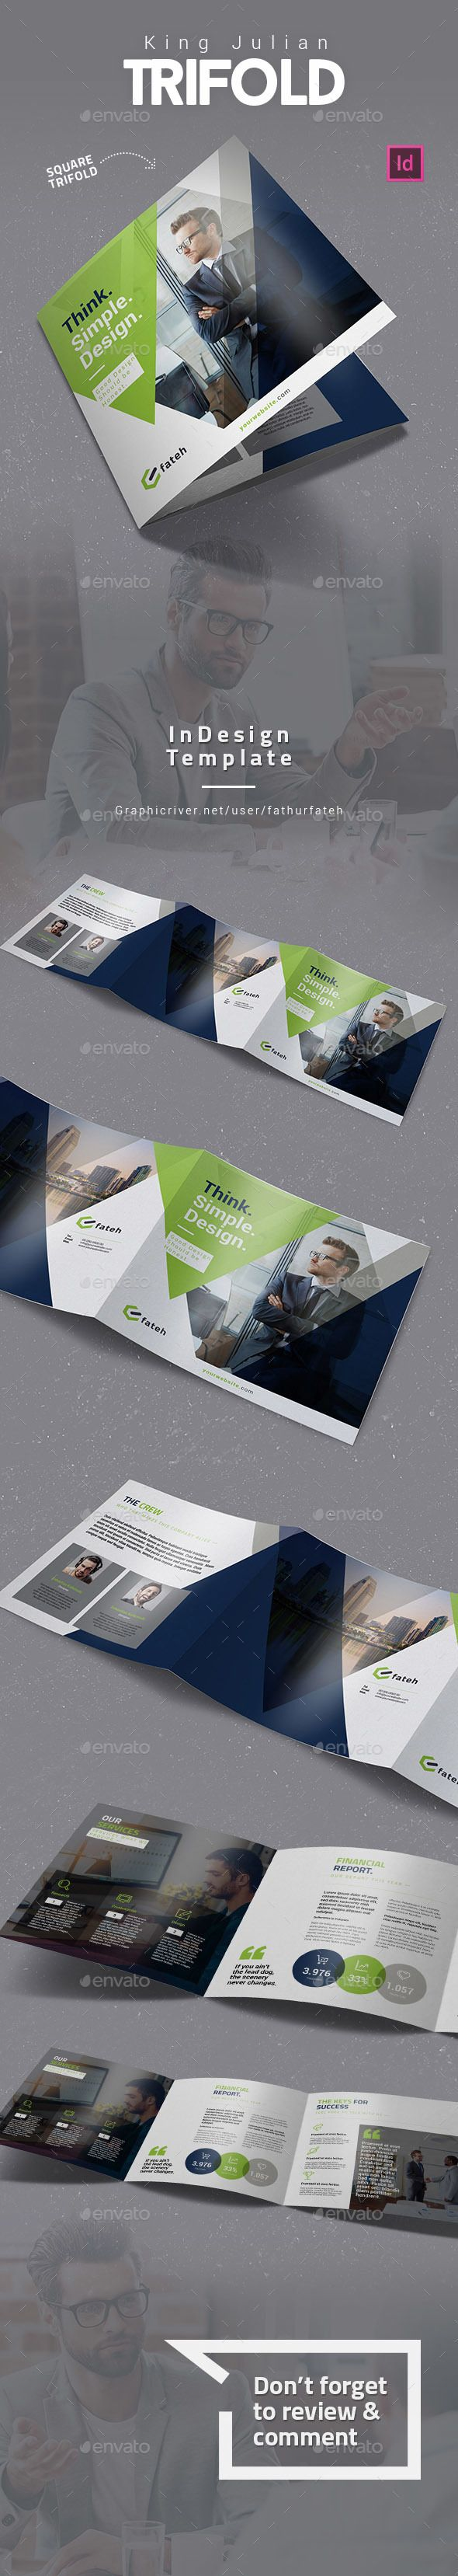 King Julian Square Trifold — InDesign INDD #agency #advertising • Download ➝ https://graphicriver.net/item/king-julian-square-trifold/18866537?ref=pxcr